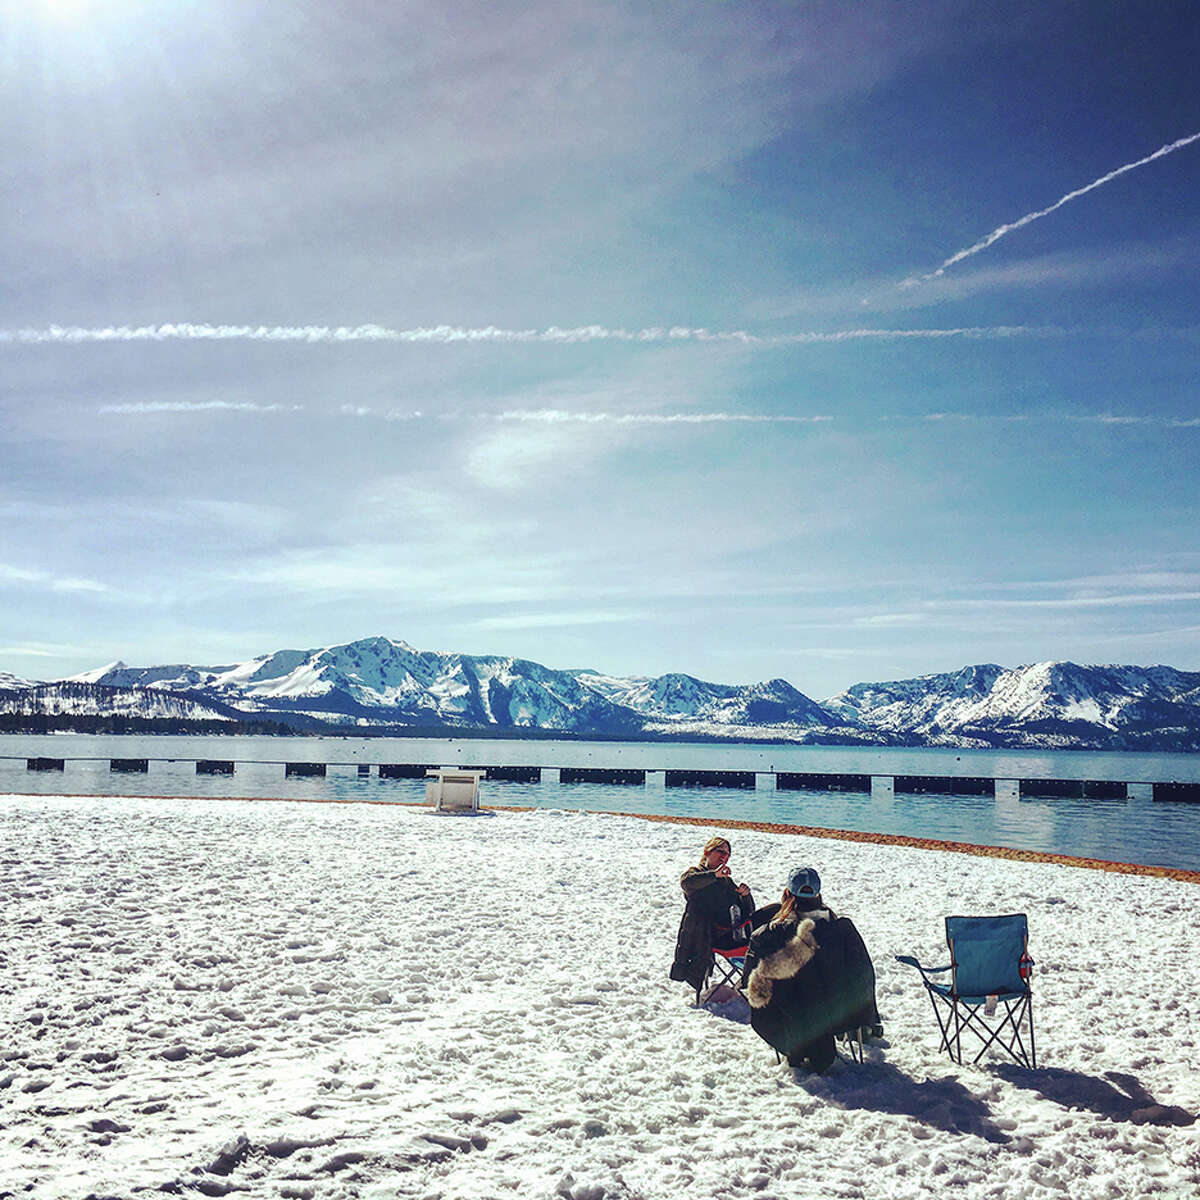 Lake Tahoe stuns with natural beauty: Winter 2017 Guidebook writer Jannine Sprout drinks hot chocolate along the snowy shores of Lake Tahoe on March 14, 2017.